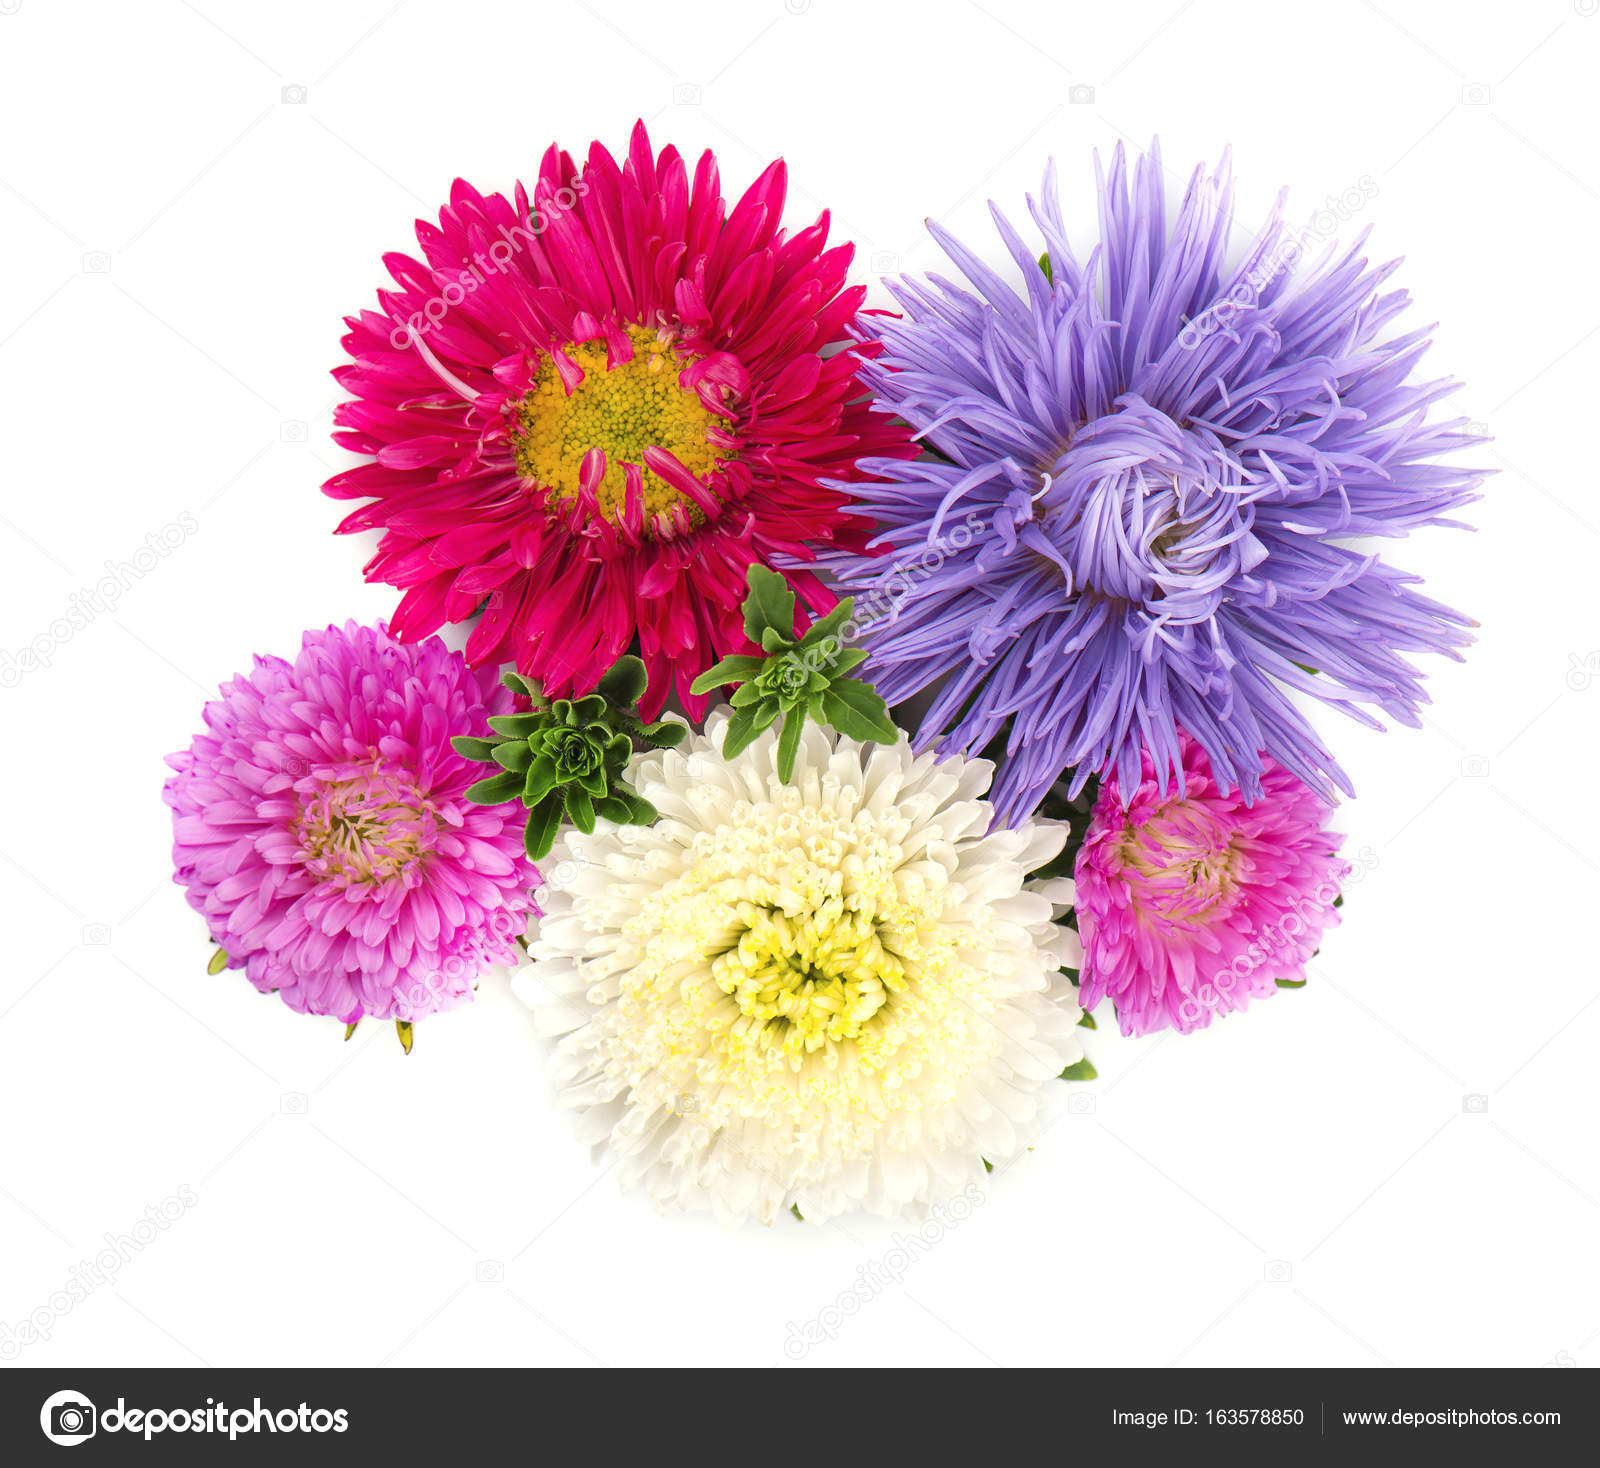 Bouquet of colorful asters flowers over white background close up bouquet of colorful asters flowers over white background photo by vandycandy izmirmasajfo